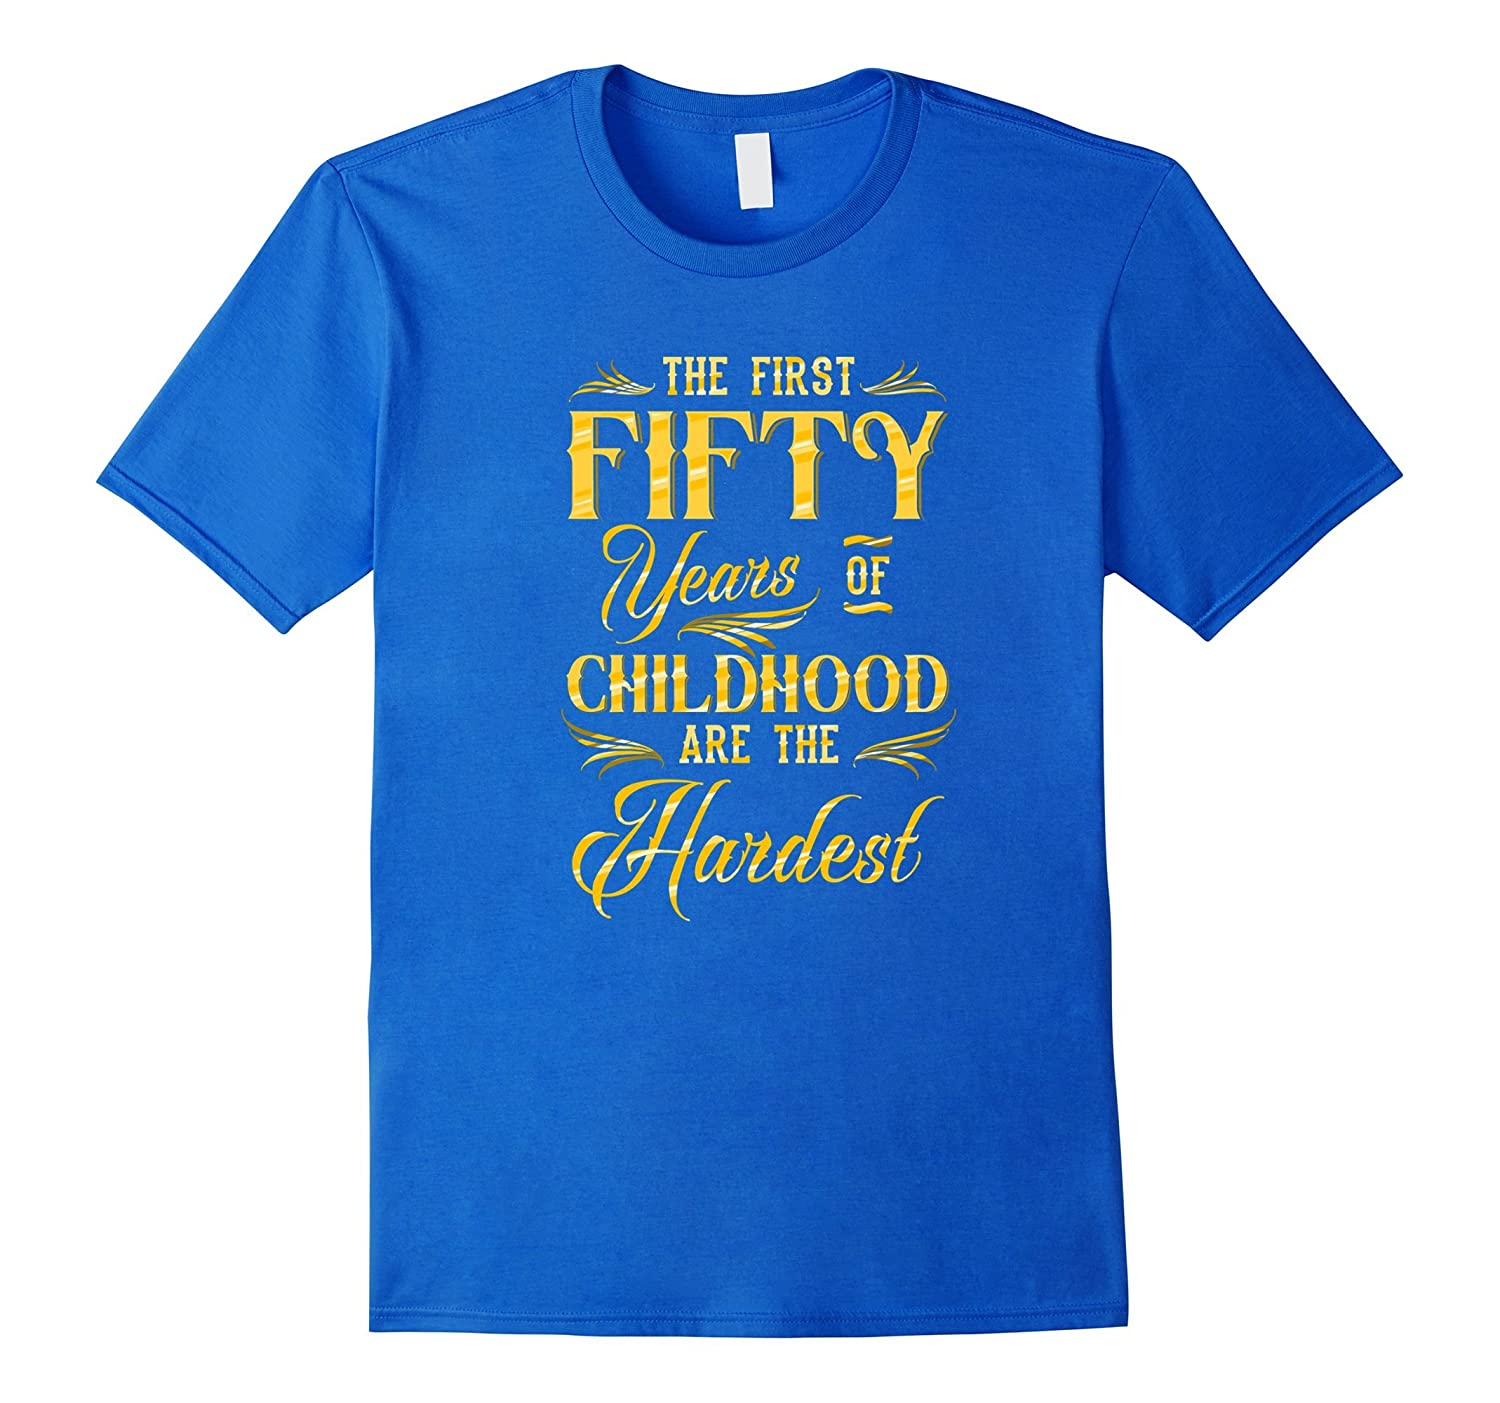 Funny 50 Years Of Childhood Birthday Sayings T Shirt